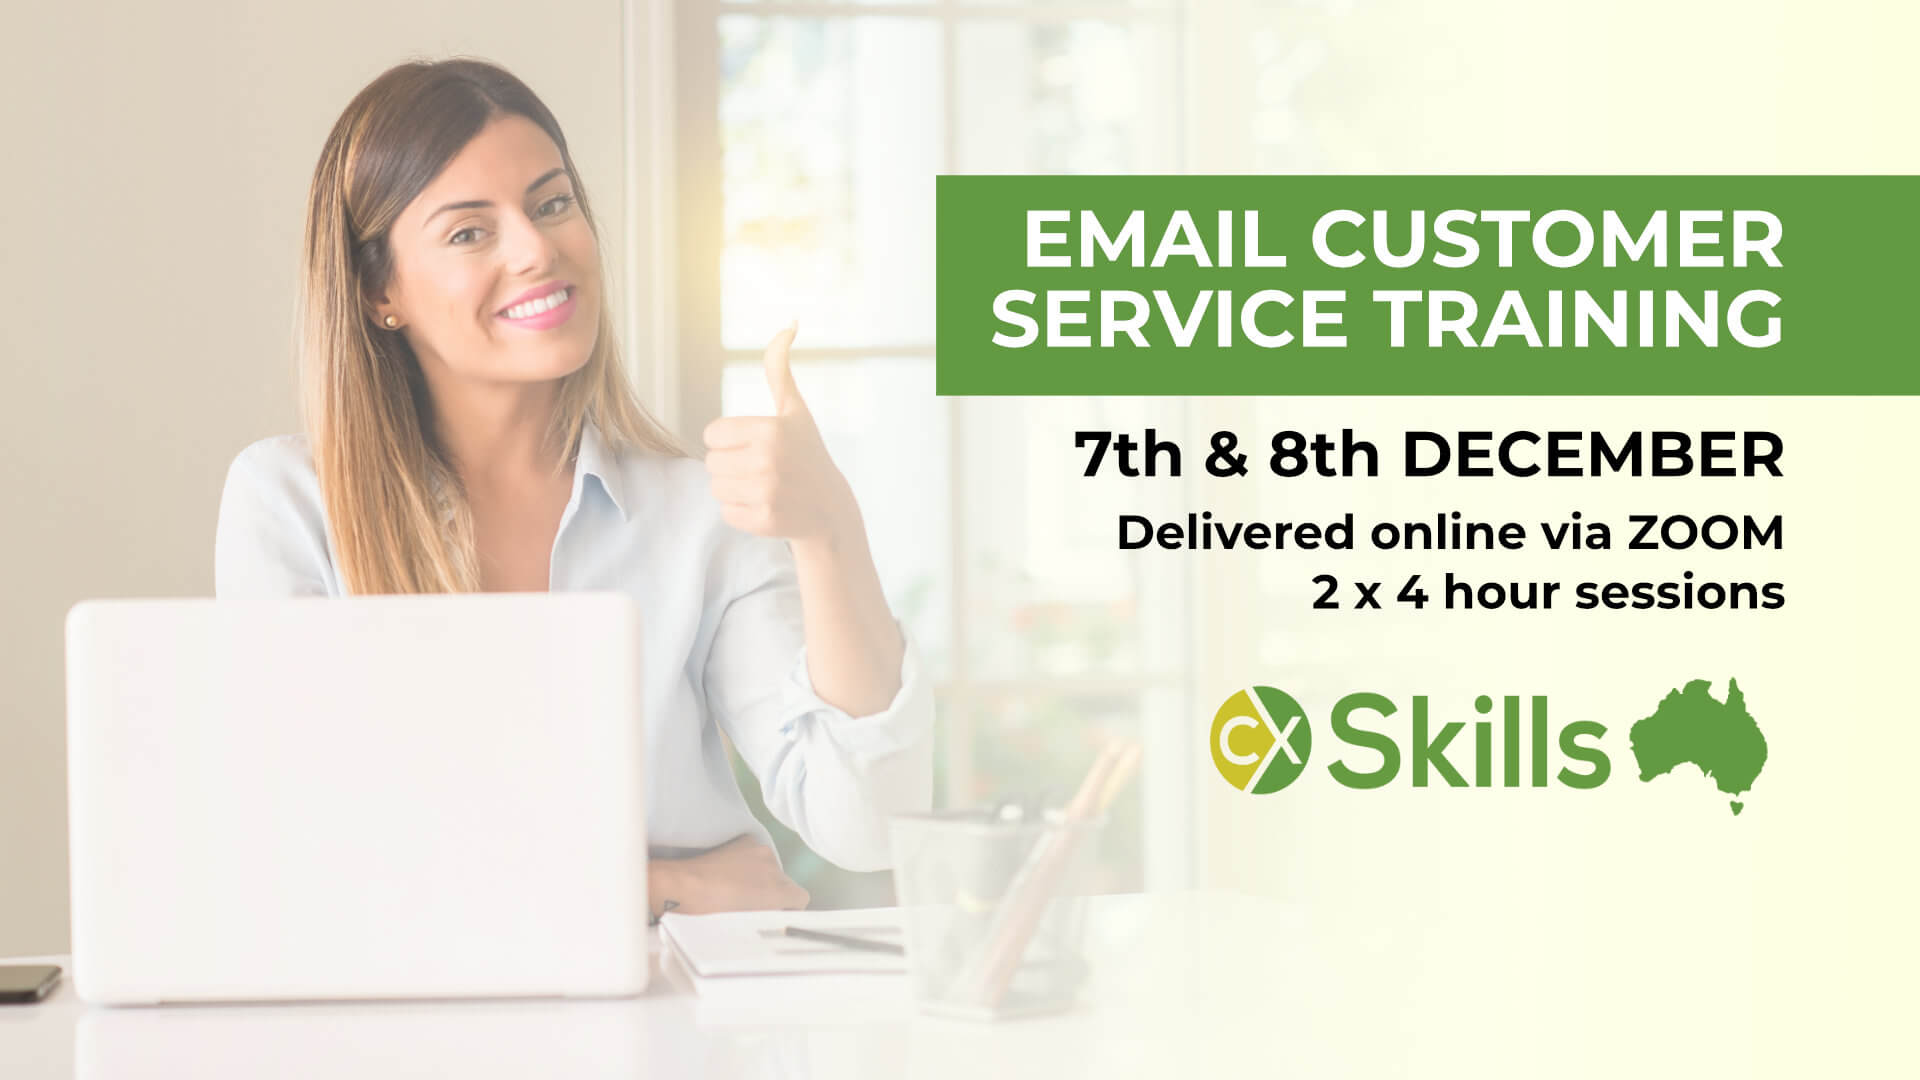 Email Customer Service training December 2020